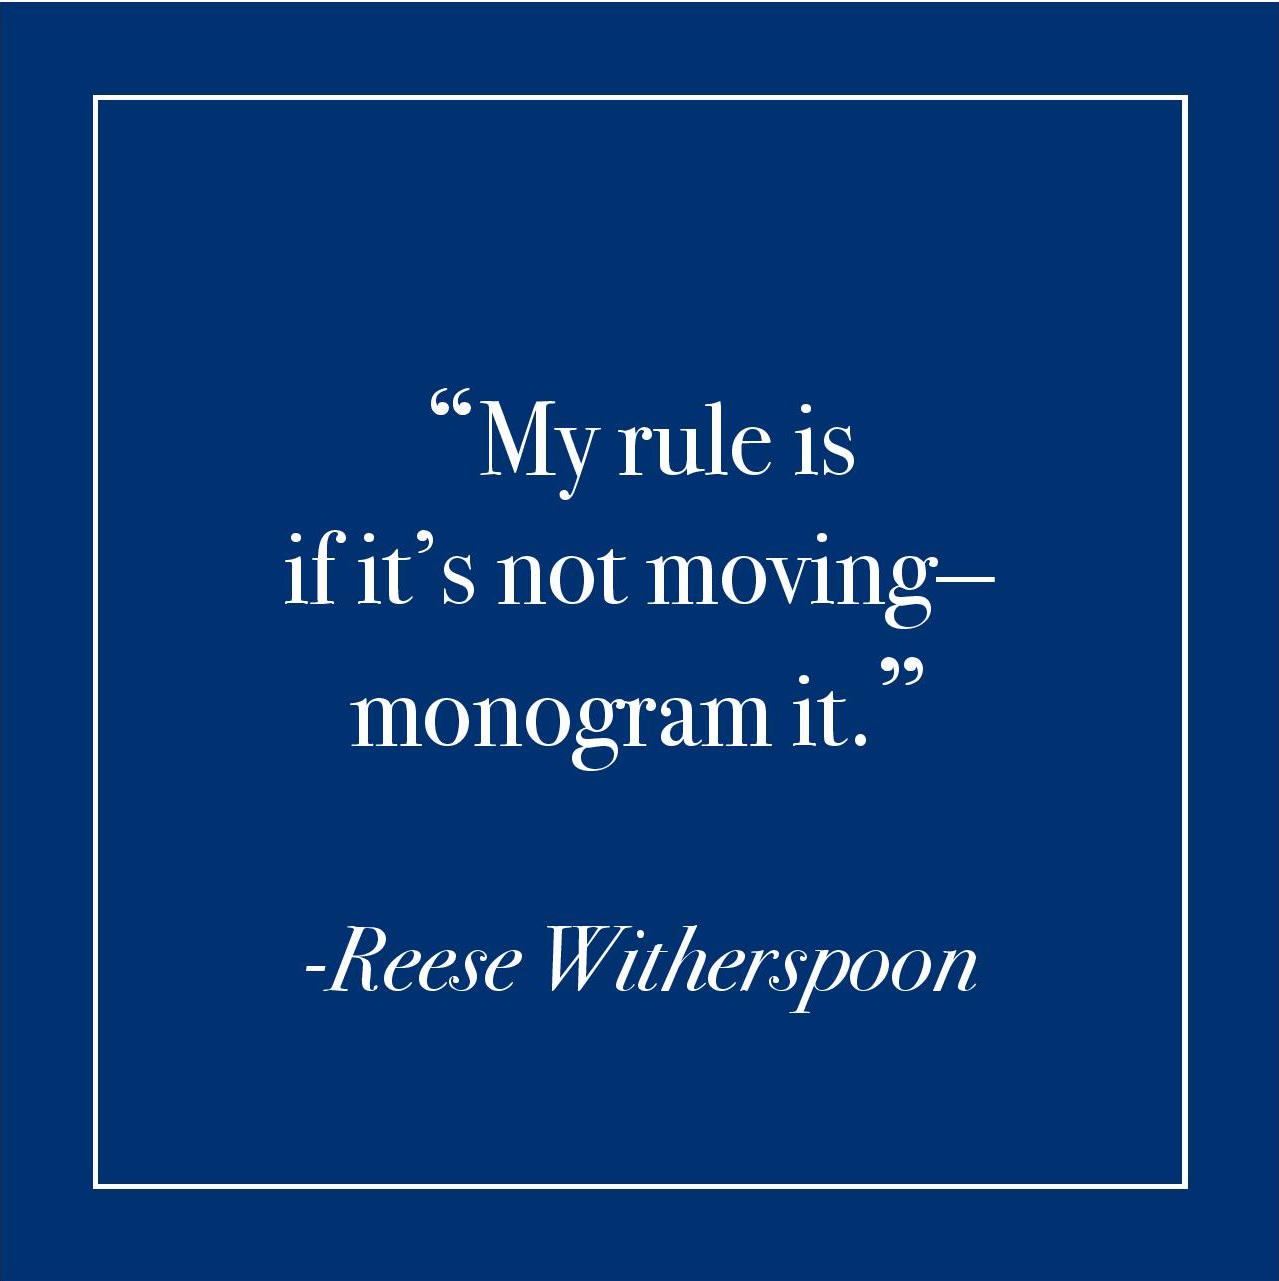 Monogrammed gift ideas | Reese Witherspoon quote | Southern charm